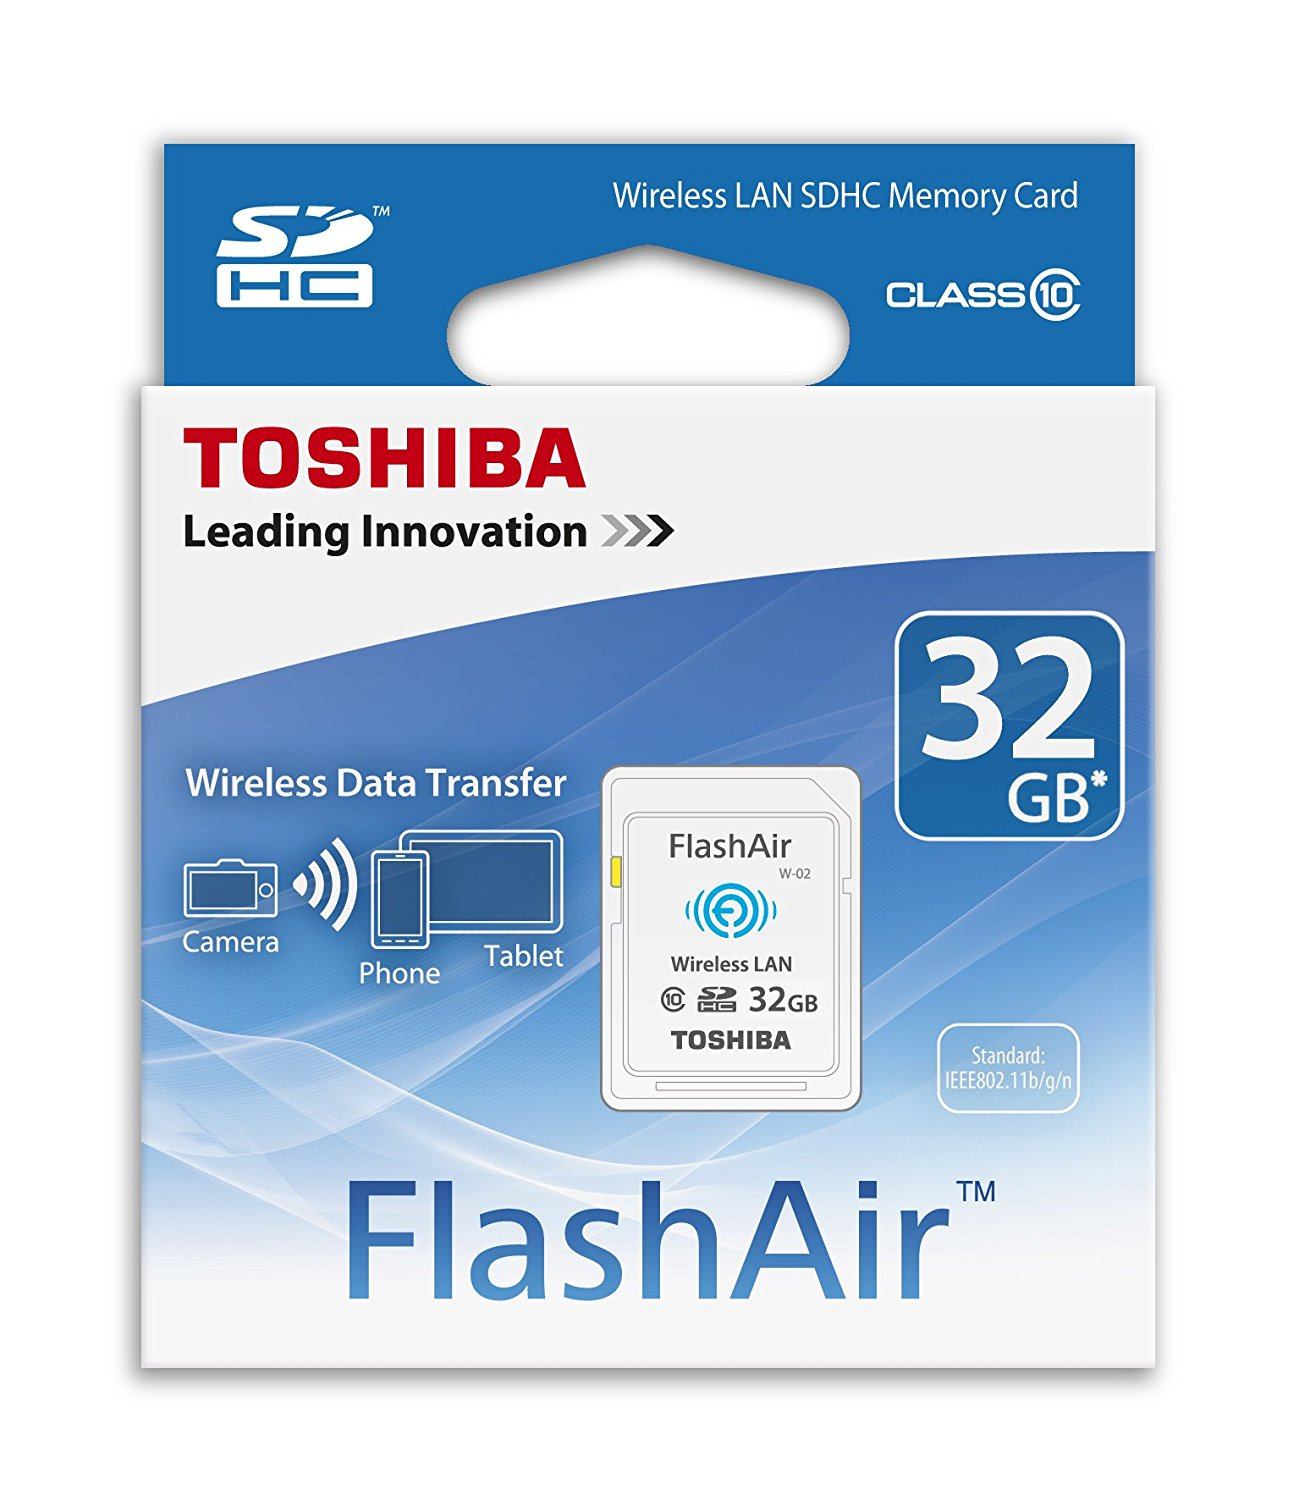 Thẻ nhớ  Toshiba sd-f08air (BL8 8GB FlashAir Wi - Fi SD card_p cấp 10.